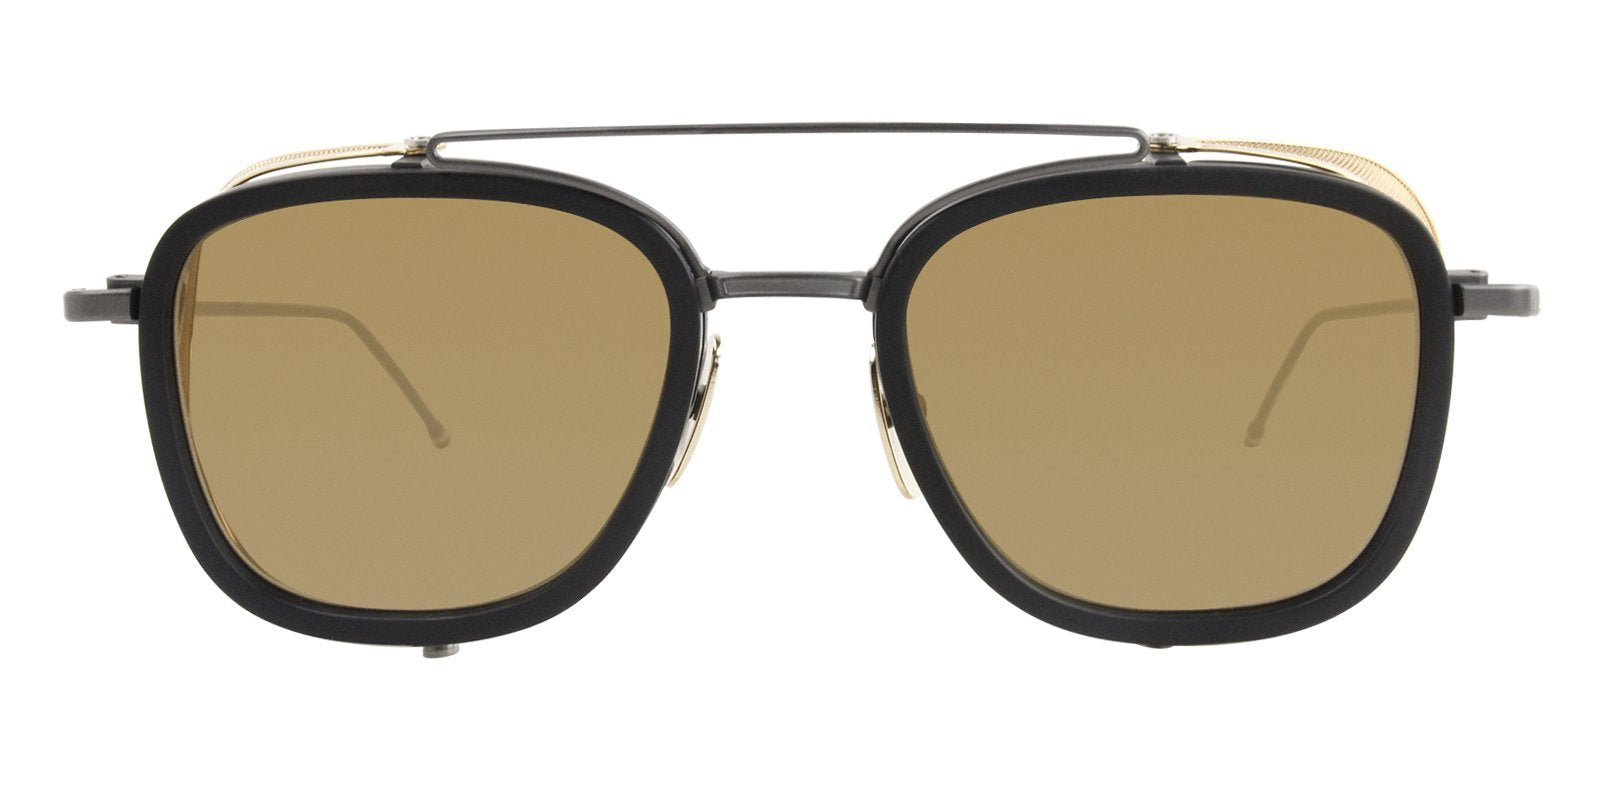 Thom Browne - TB-808 Matte Black - Black Iron - Gold Men Sunglasses - mm-Sunglasses-Designer Eyes